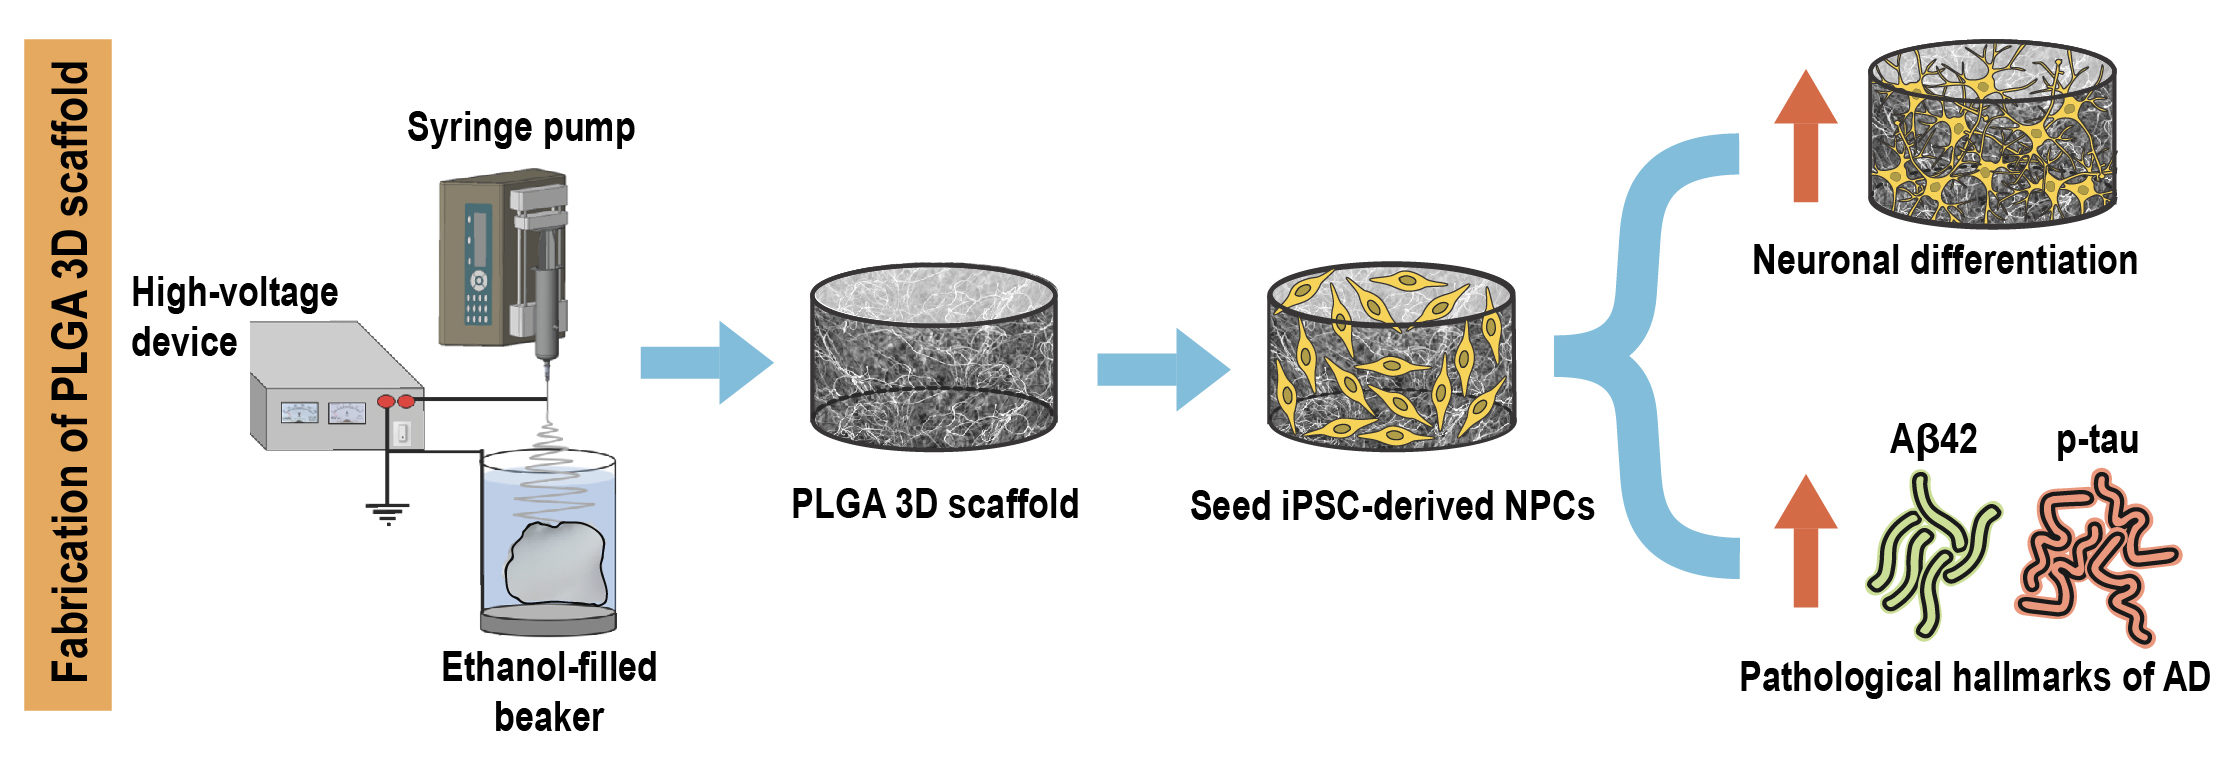 Schematic showing fabrication of PLGA 3D scaffold